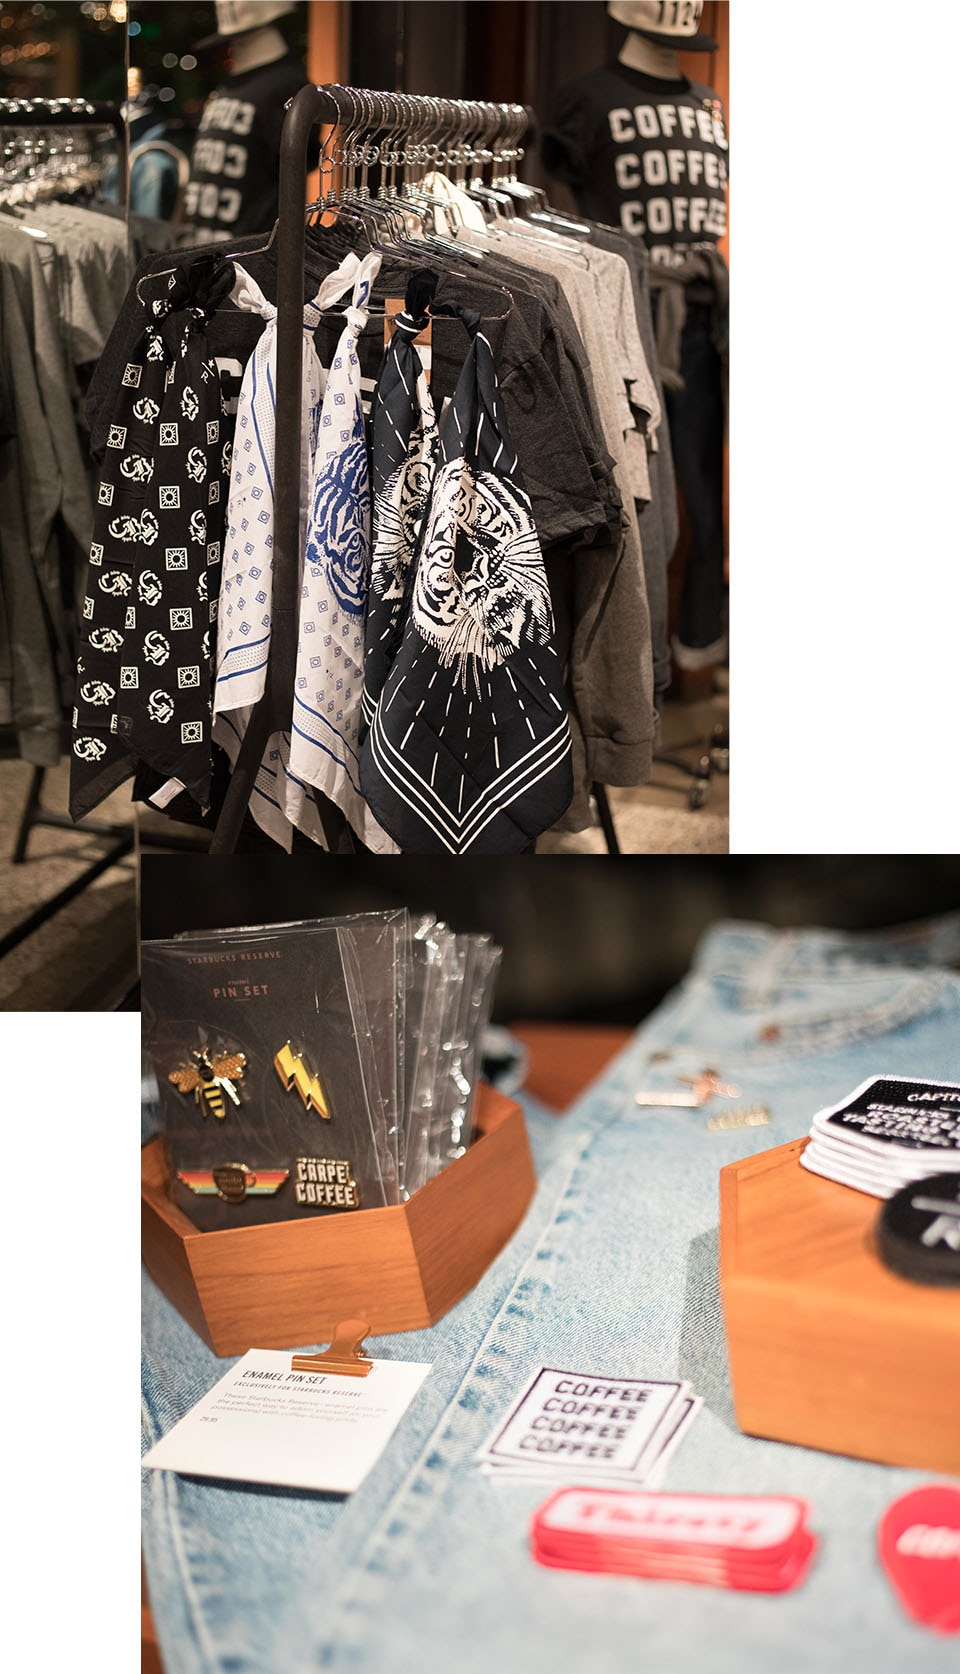 Collage of items made of t-shirts and scarves on hangers on display and pins, stickers, and patches on display on top of denim